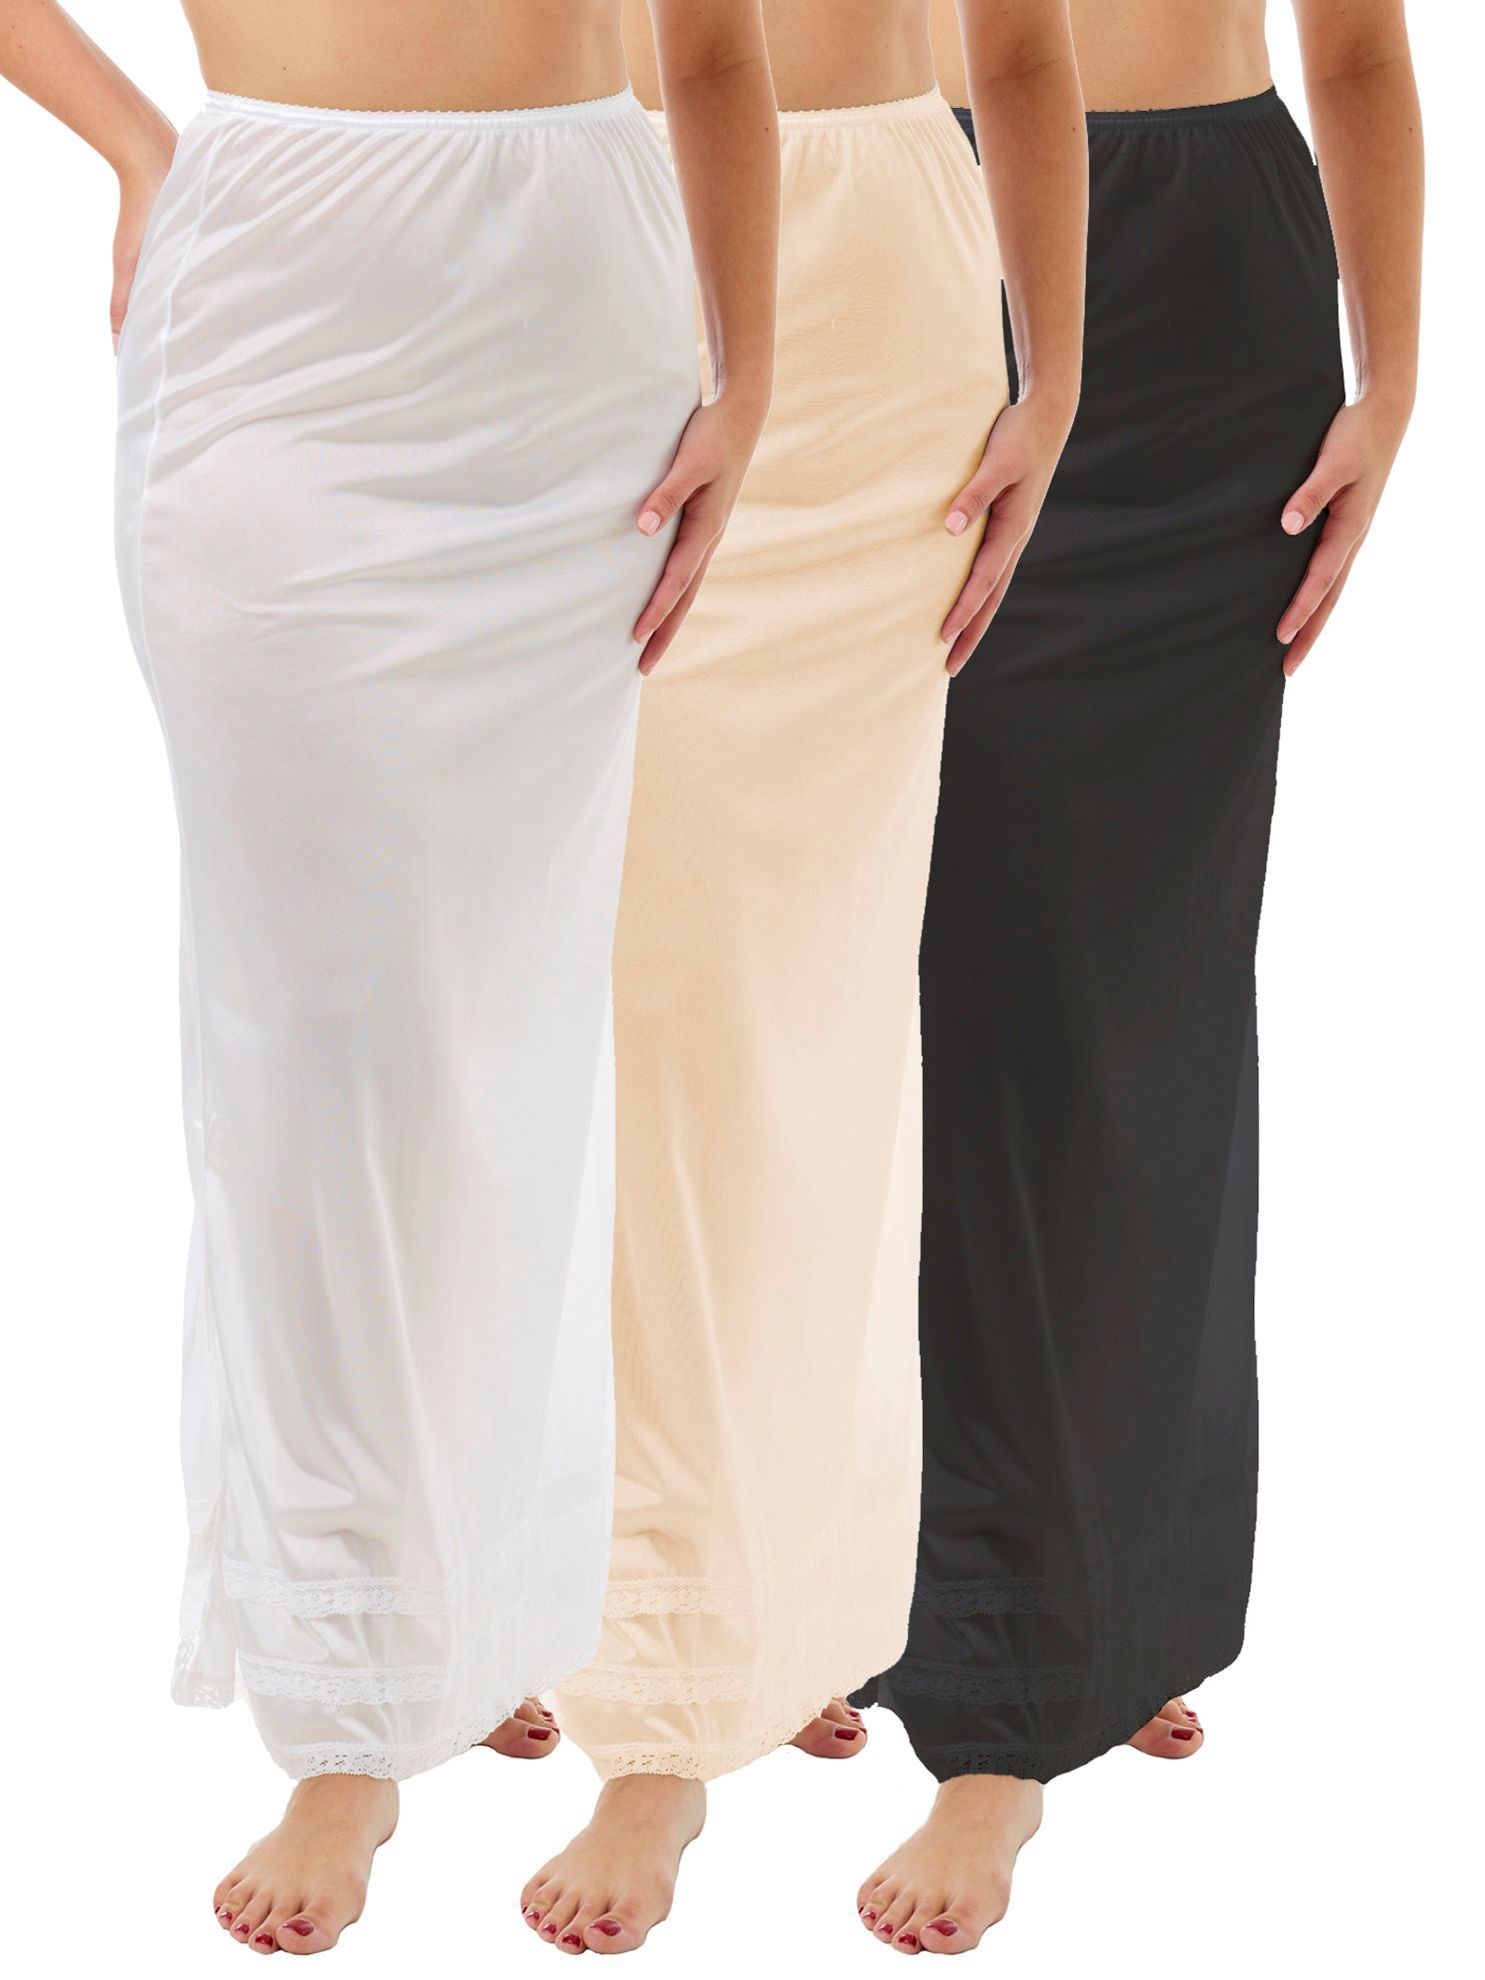 Picture of Nylon Maxi Length Half Slip 3-Pack